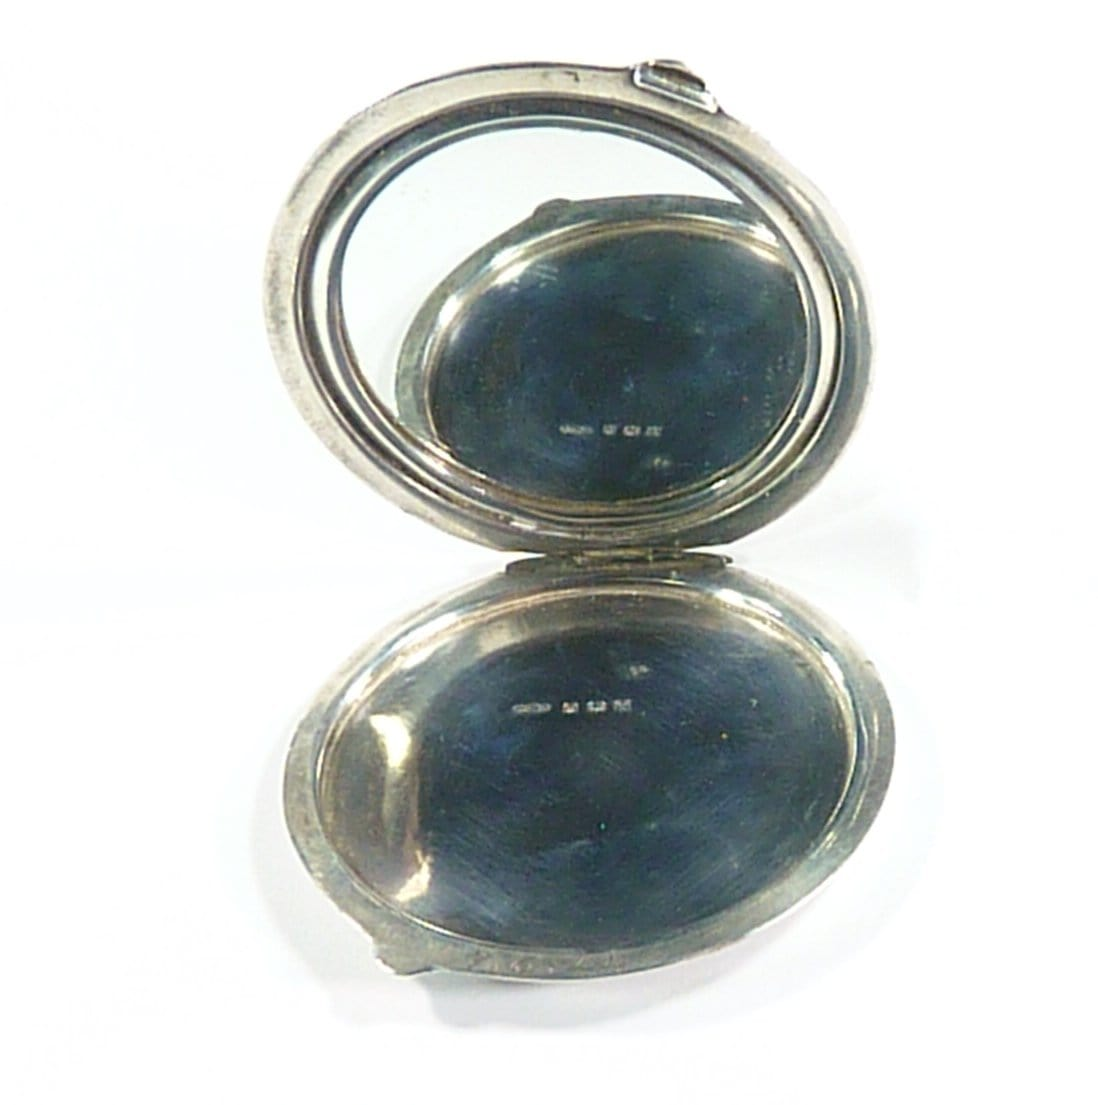 Solid Silver Compact Mirror Engraved Initials A C N 1943